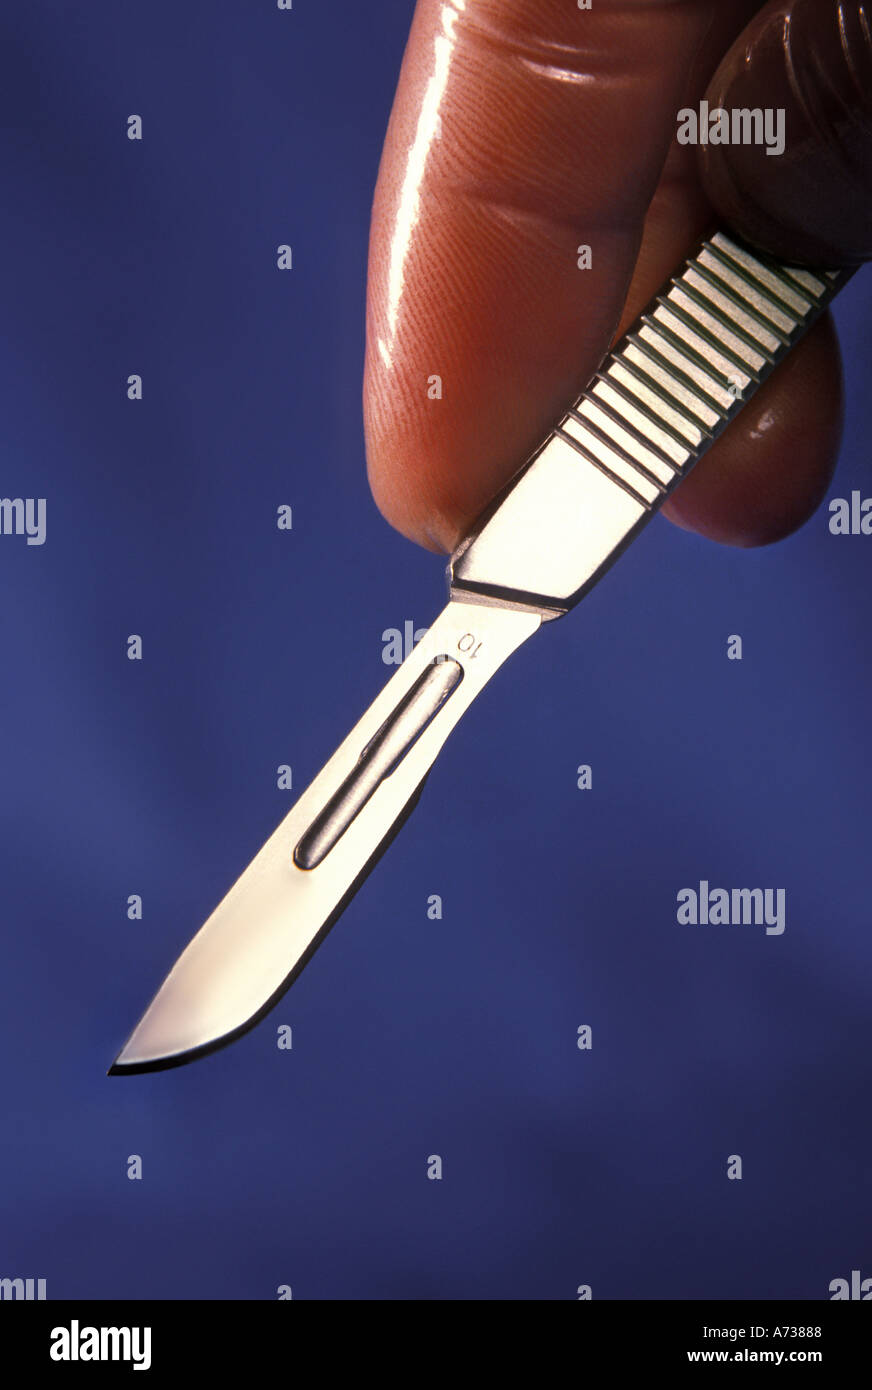 latex gloved hand holding surgical scalpel Stock Photo